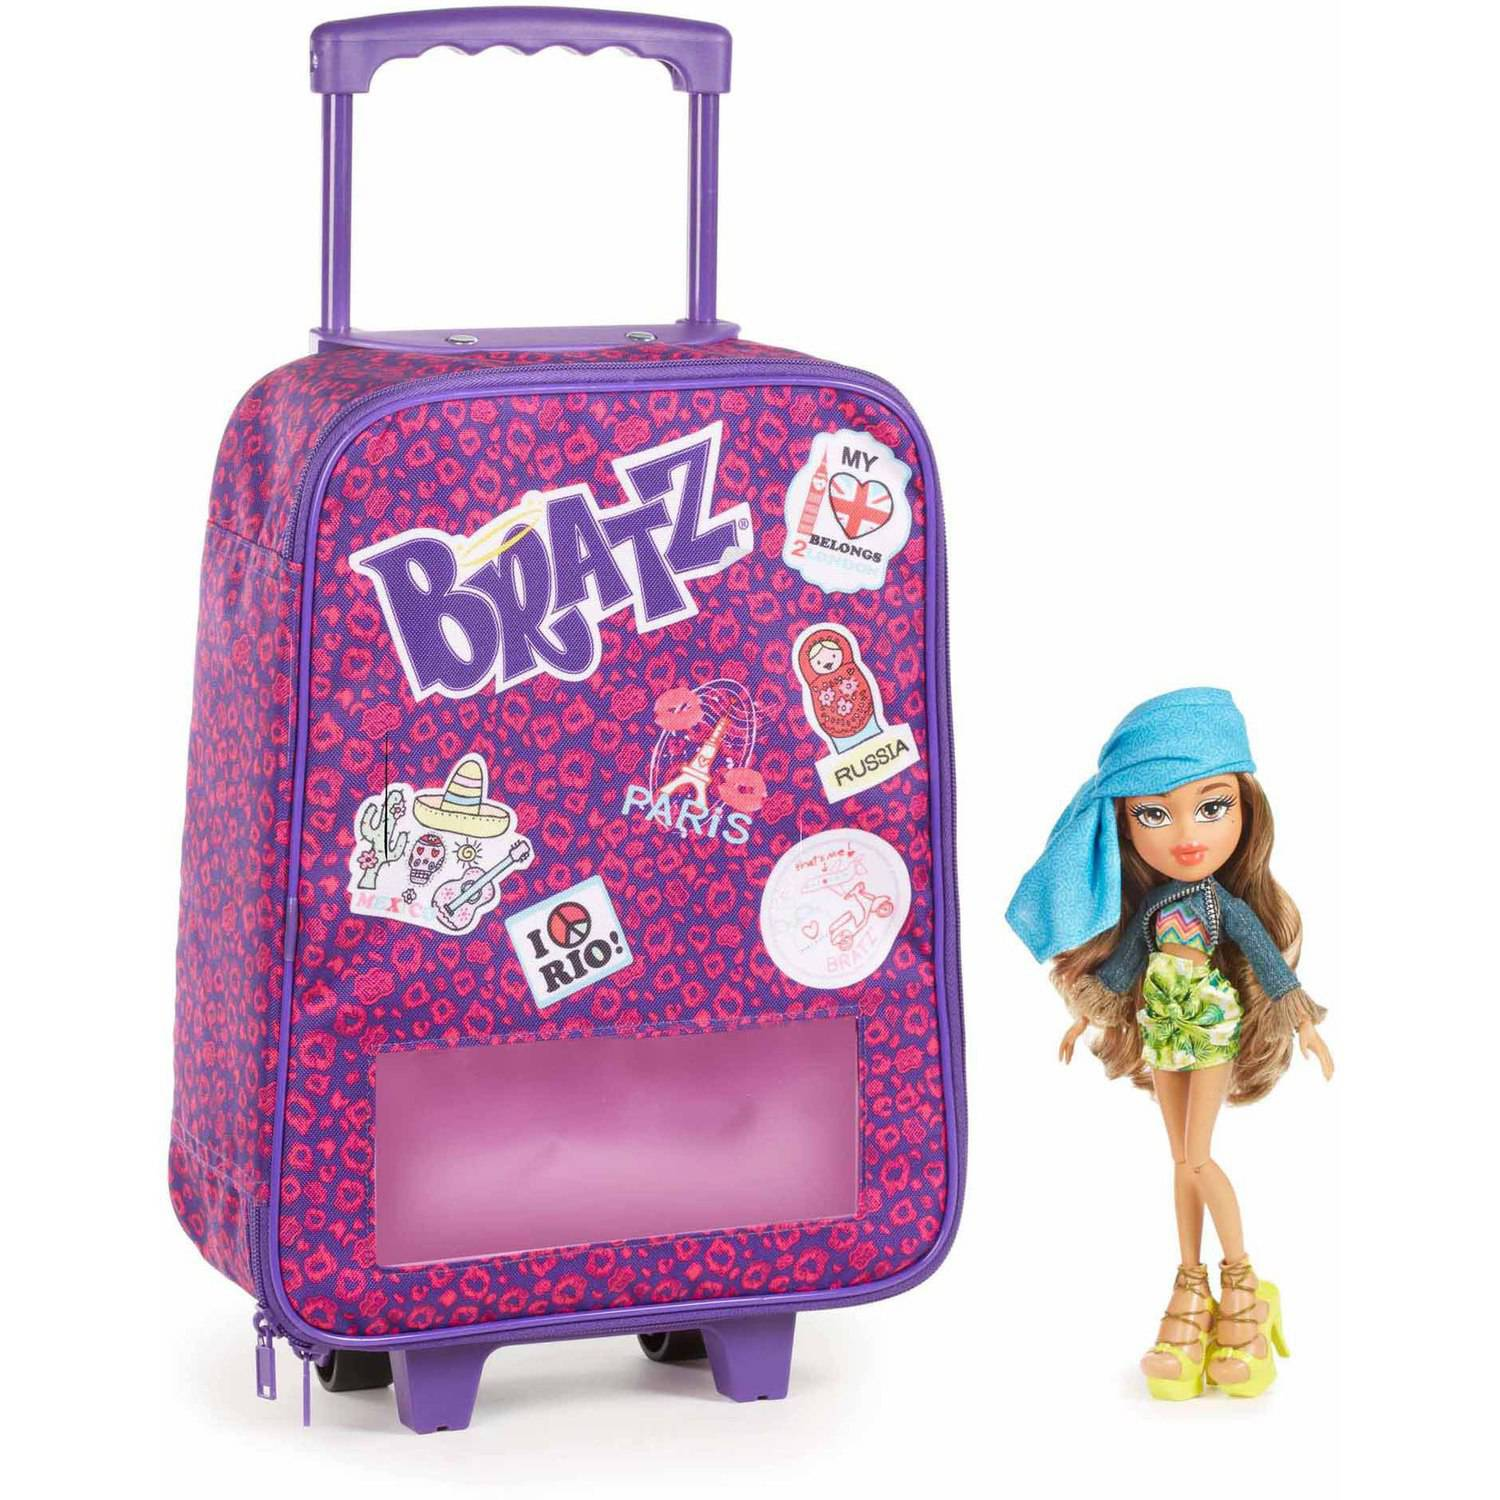 Bratz Study Abroad Case with Doll by MGA Entertainment